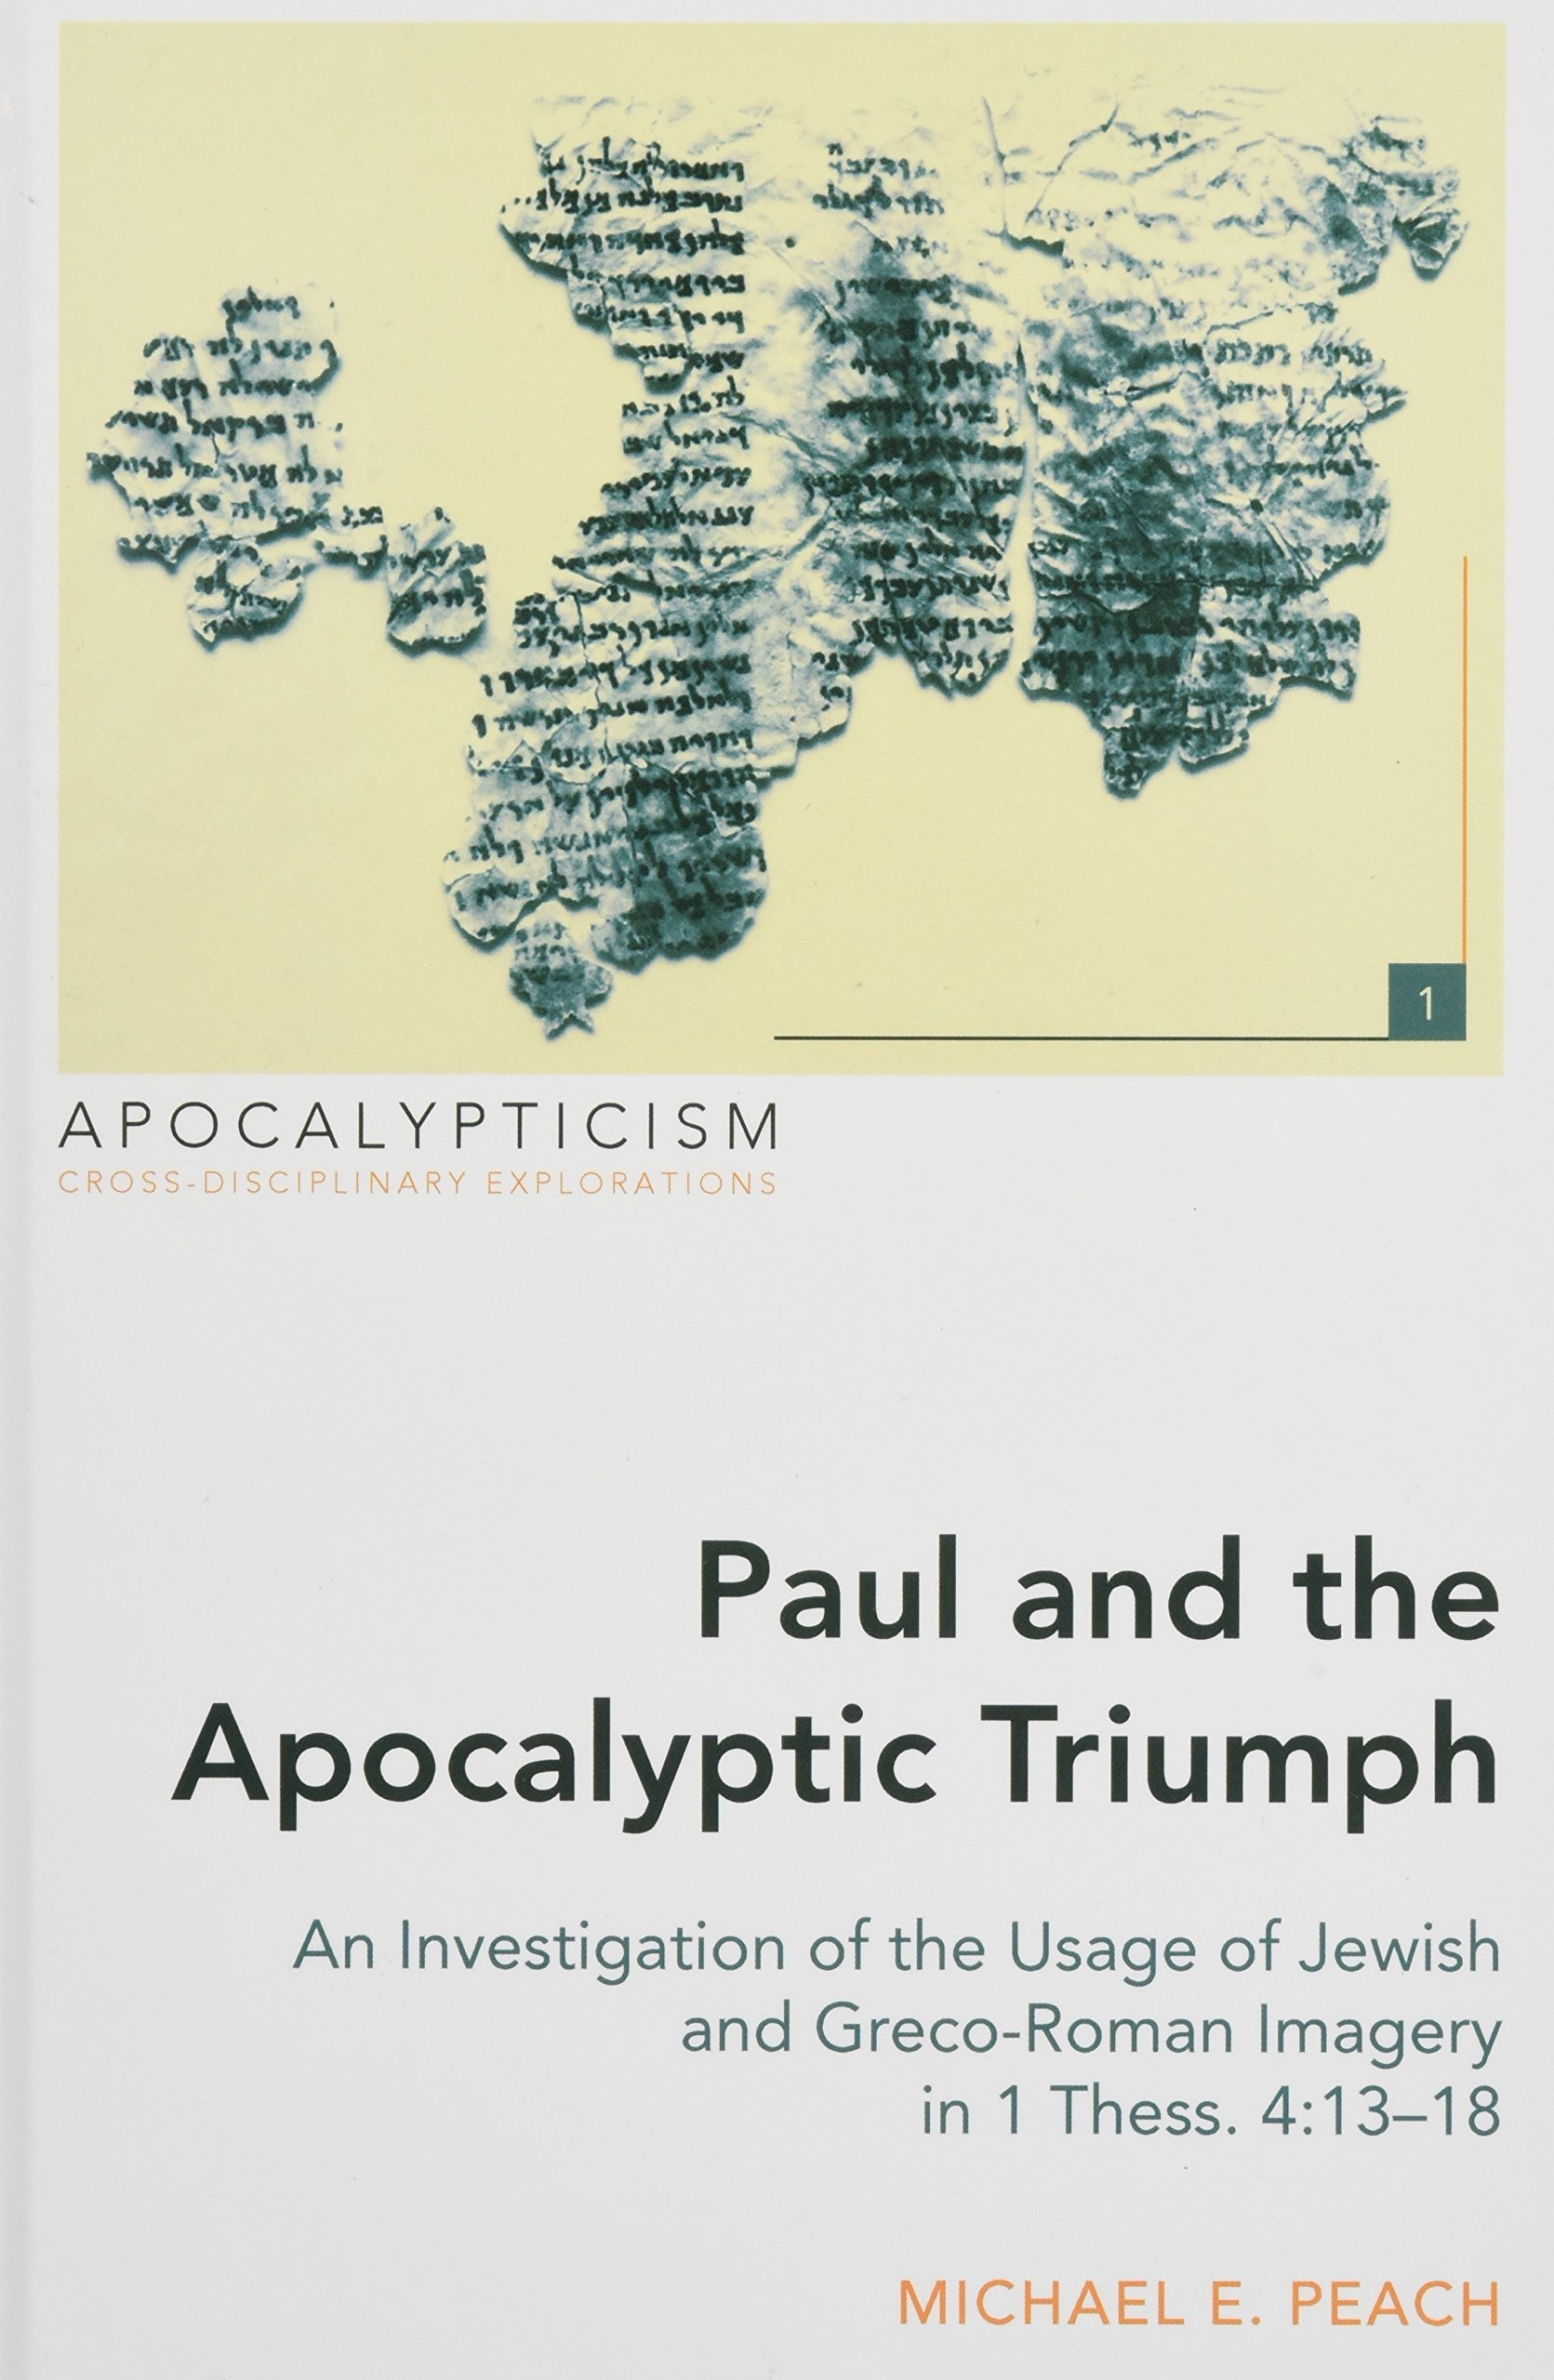 Paul and the Apocalyptic Triumph: An Investigation of the Usage of Jewish and Greco-Roman Imagery in 1 Thess. 4:13–18 (Apocalypticism) ebook